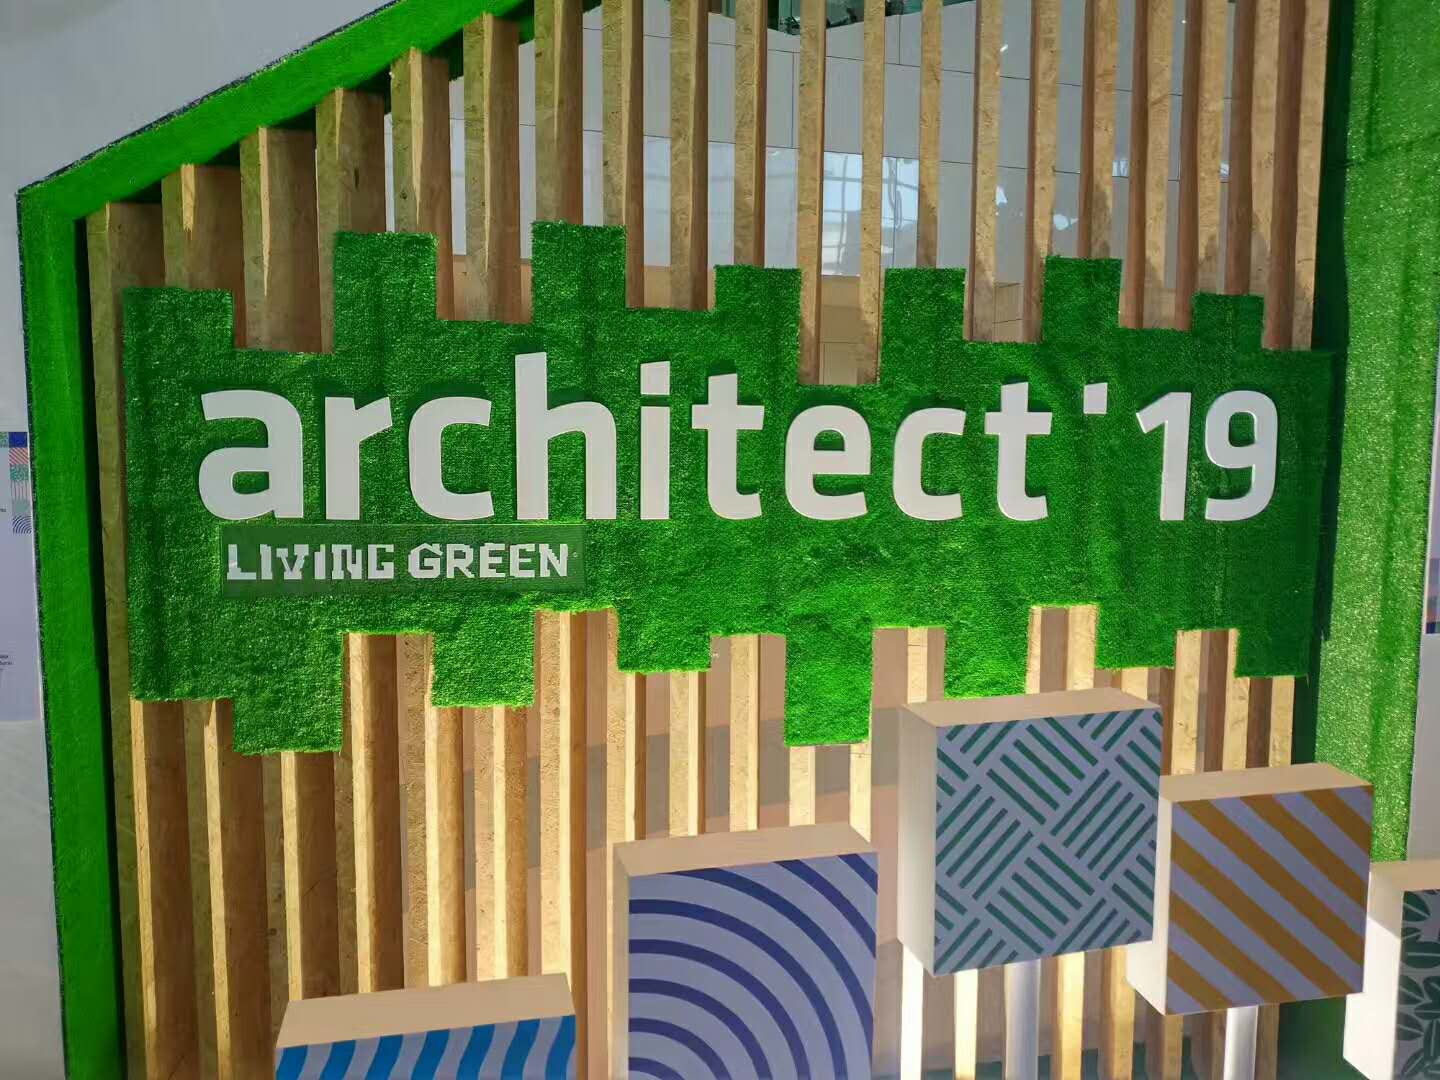 architect-livinggreen